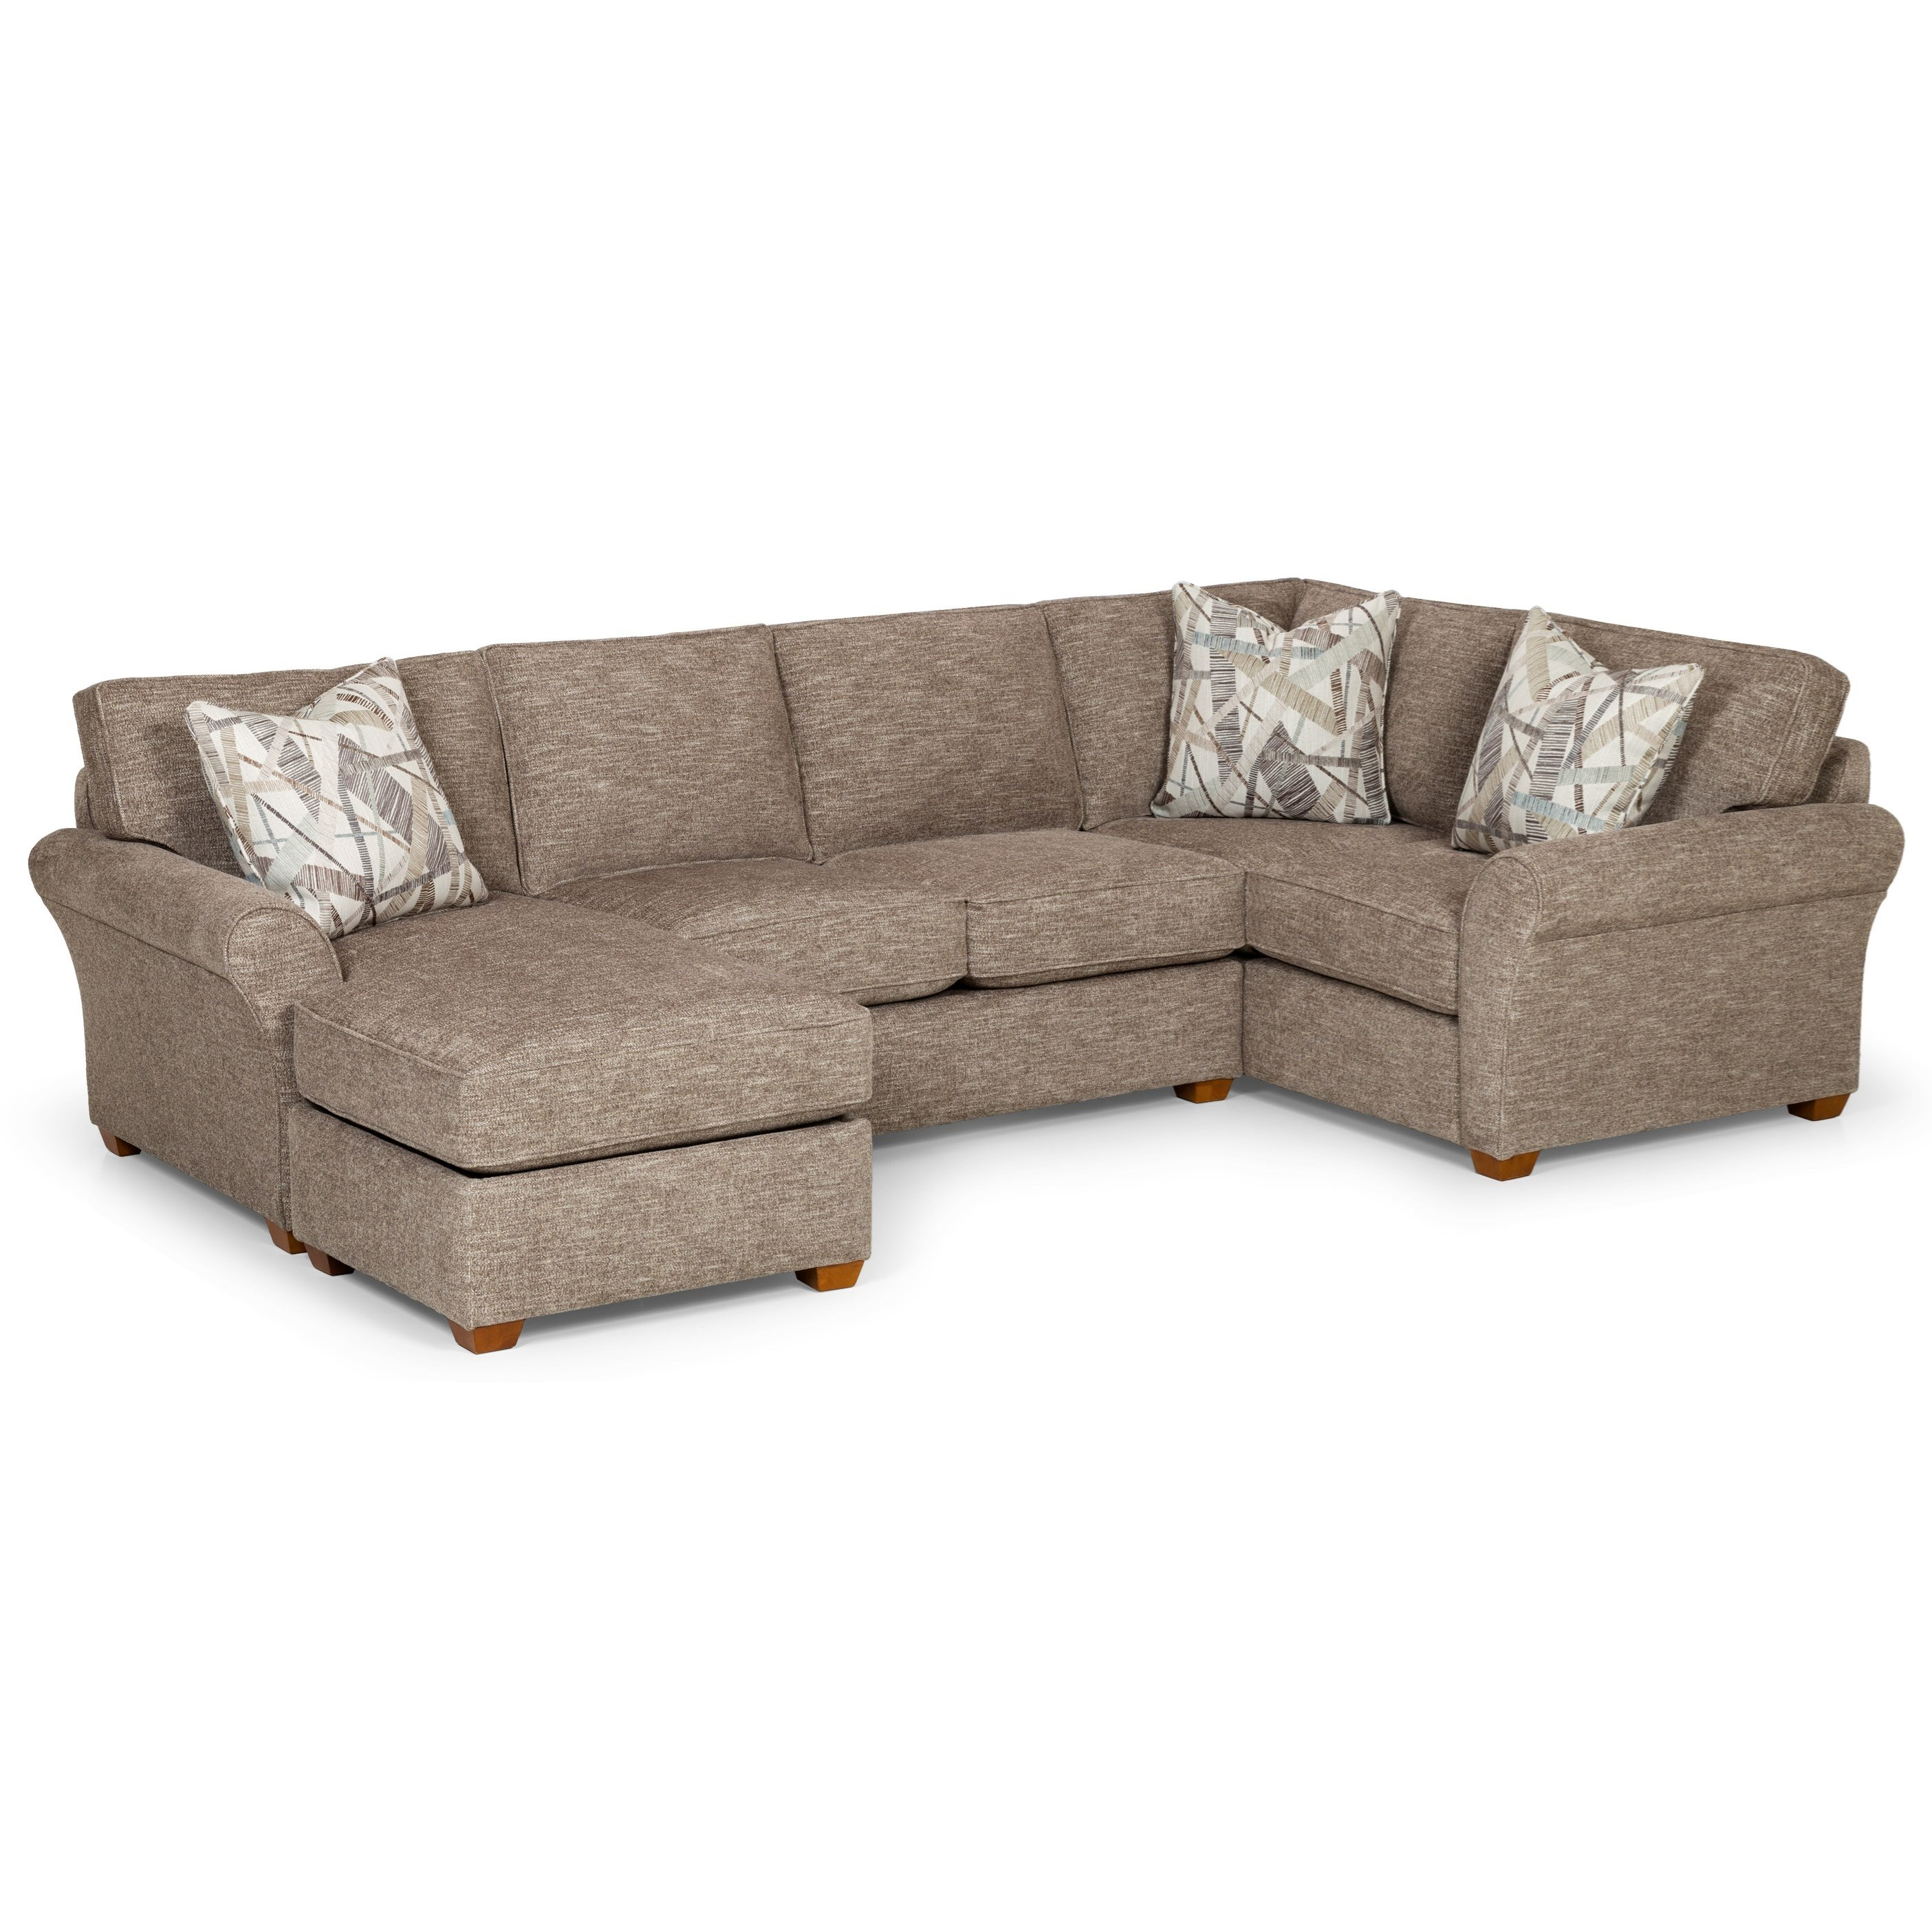 460 2 Pc Sectional Sofa by Stanton at Wilson's Furniture